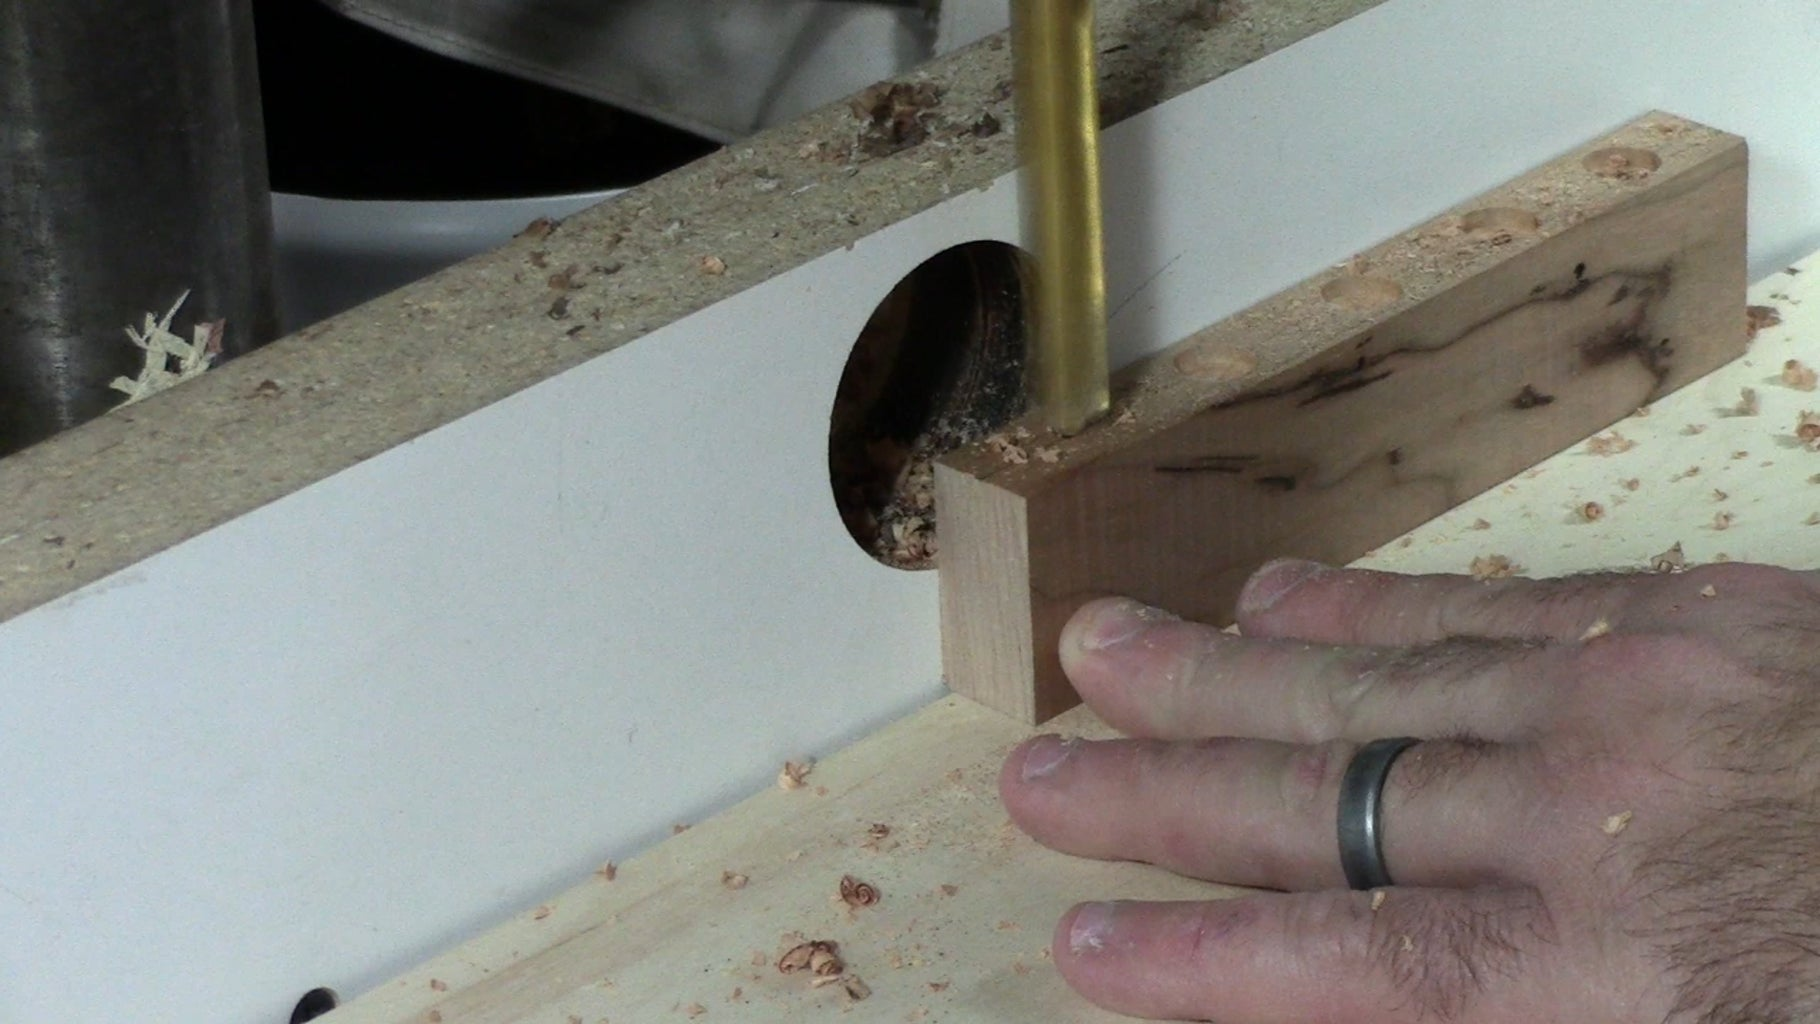 Lay Out and Drill the Holes for the Magnets.